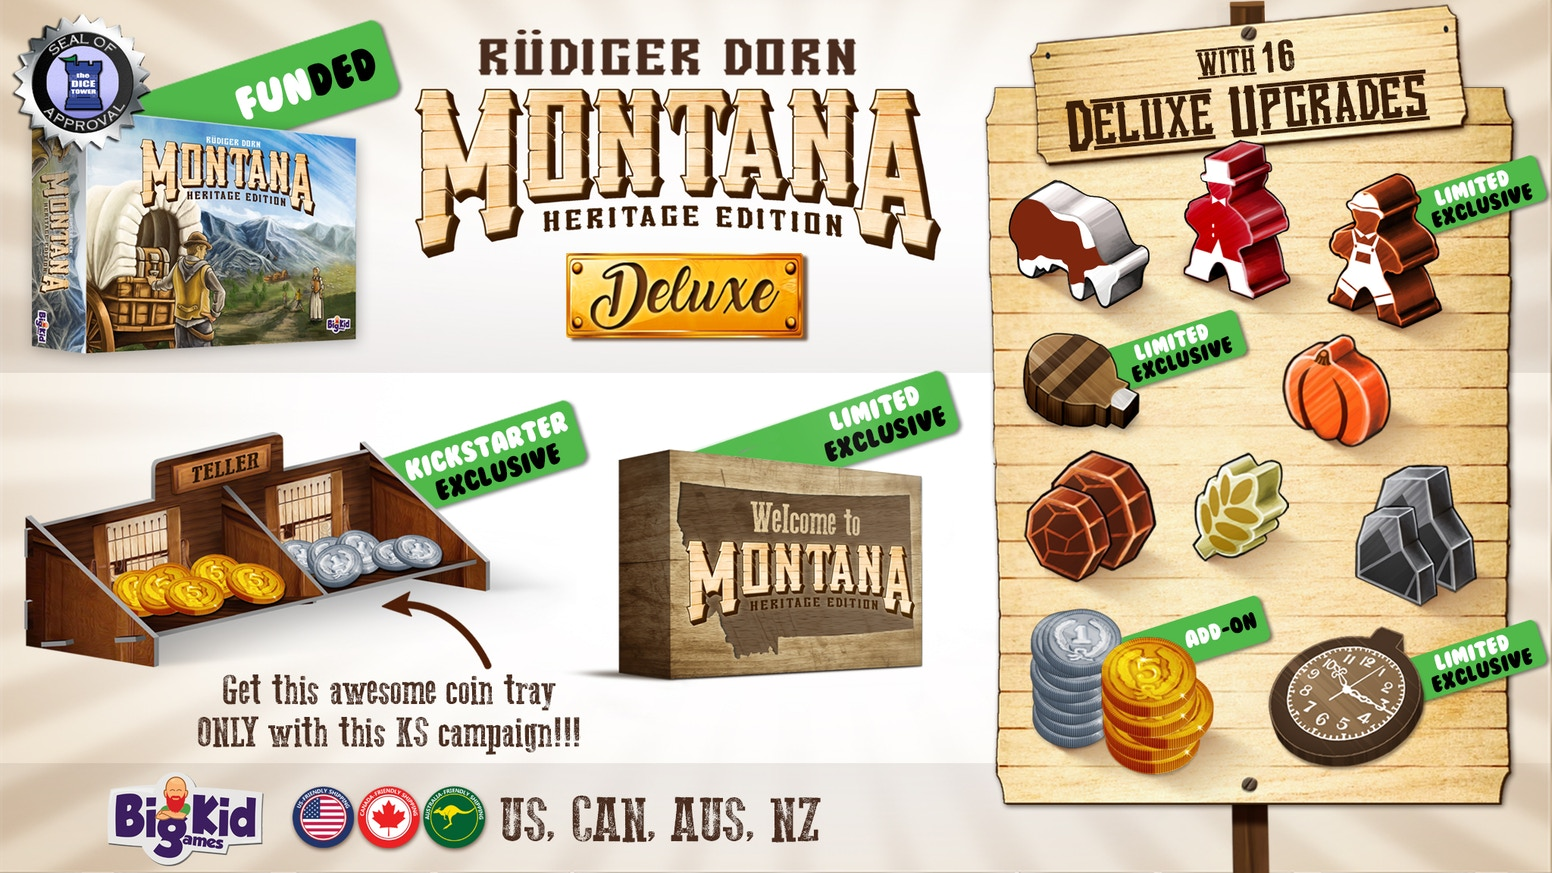 Montana is on the way to North America. Order your copy at your local game store!